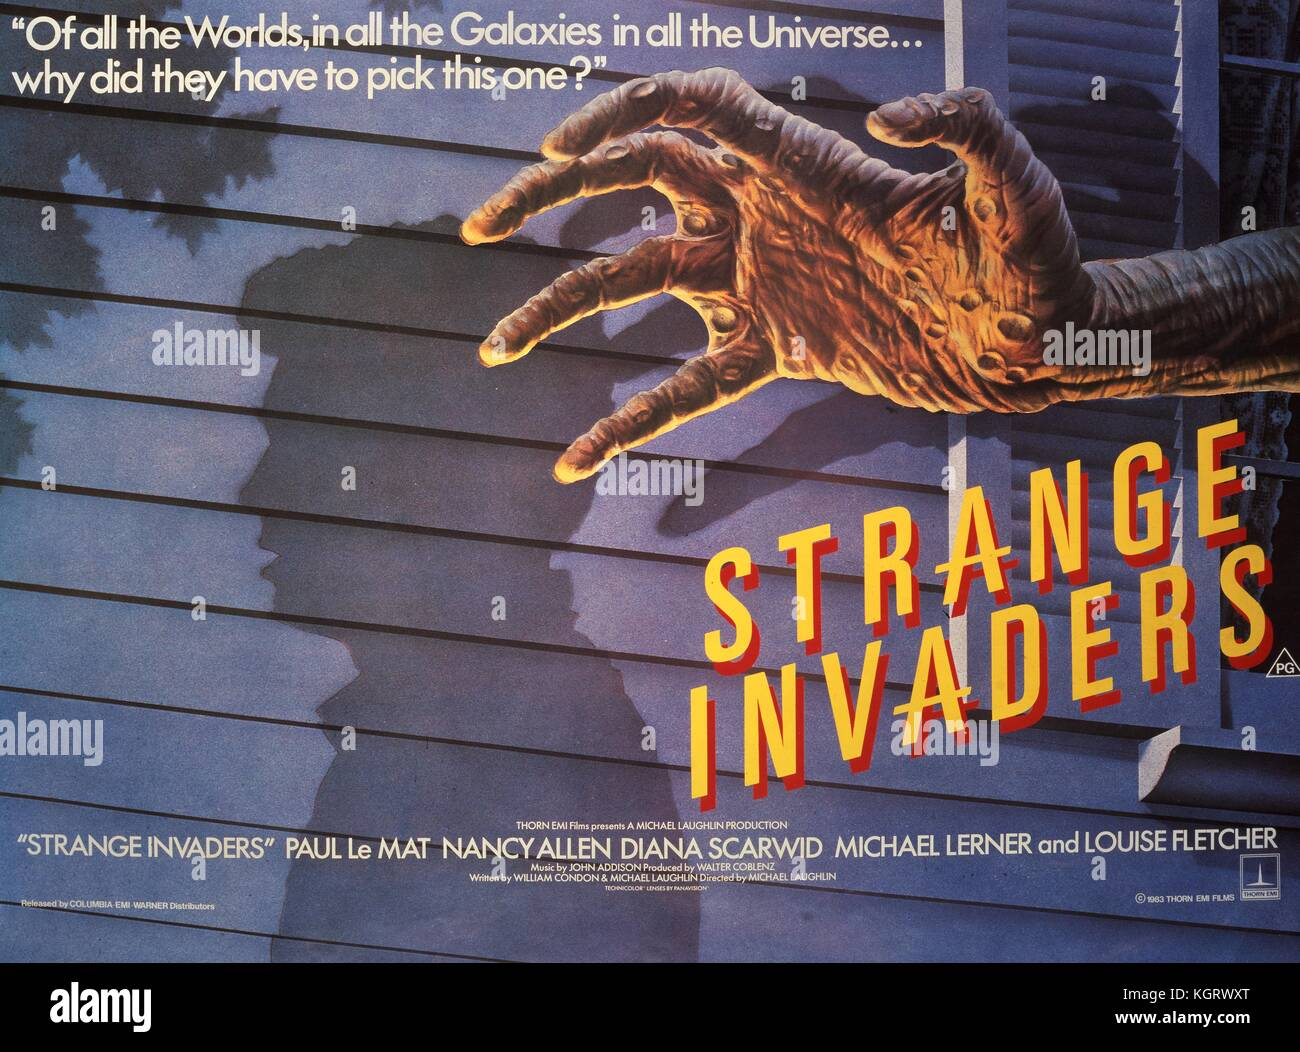 1983 Movie Posters: Sci Fi Film Posters Stock Photos & Sci Fi Film Posters